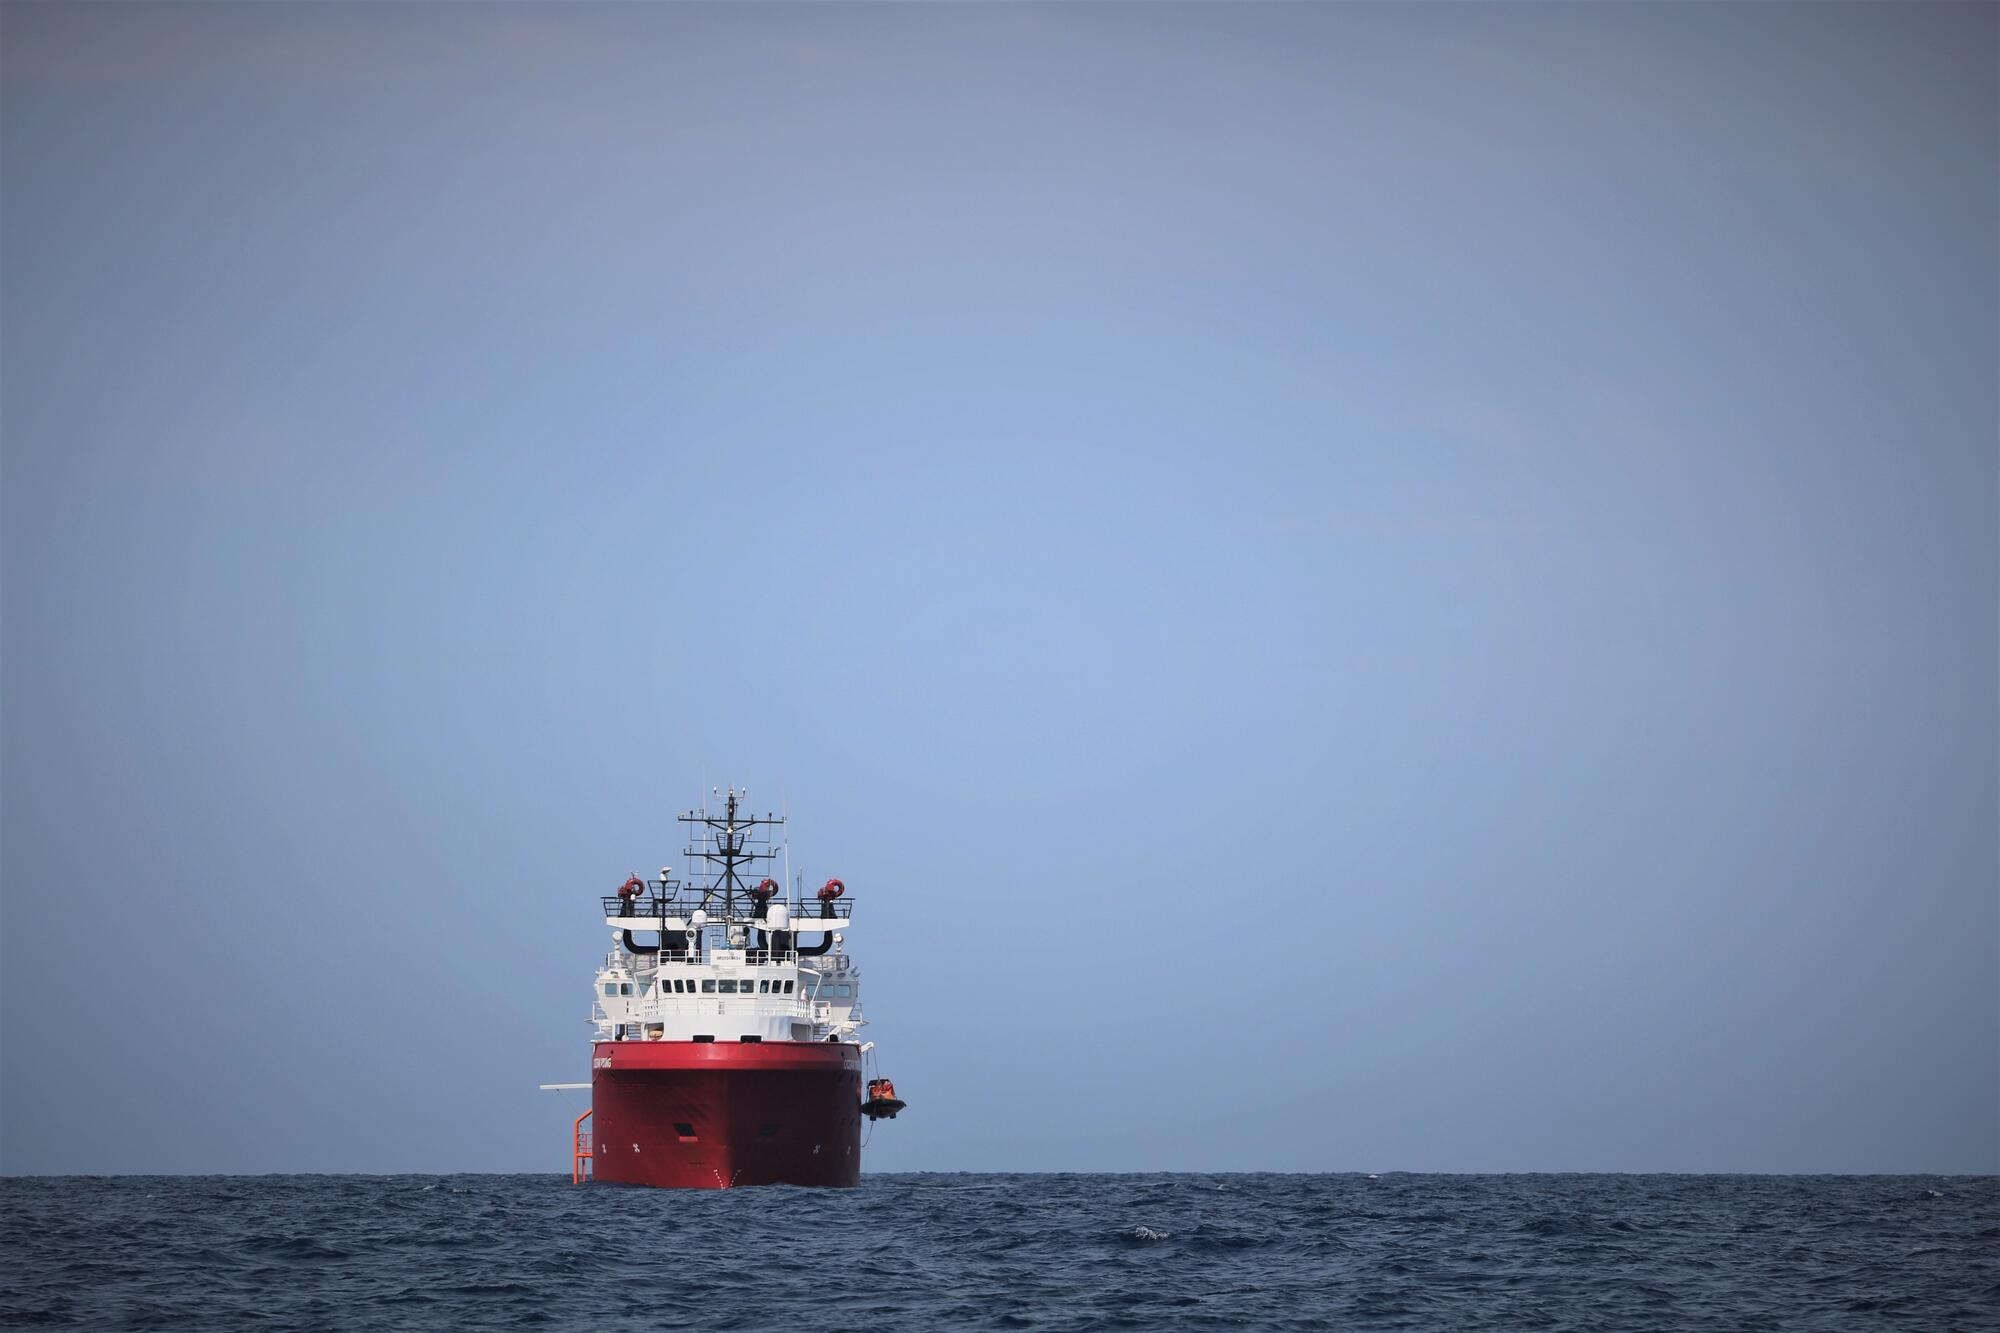 Loss of life in Mediterranean signals ongoing humanitarian tragedy